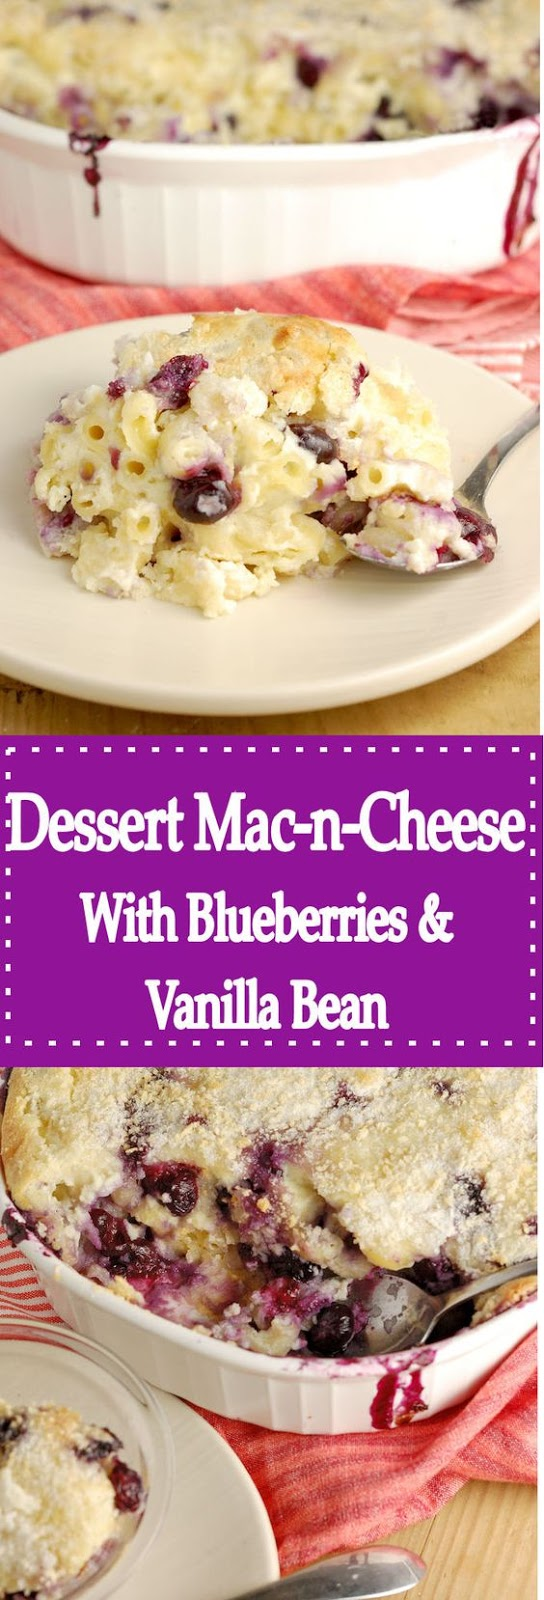 Dessert Macaroni And Cheese